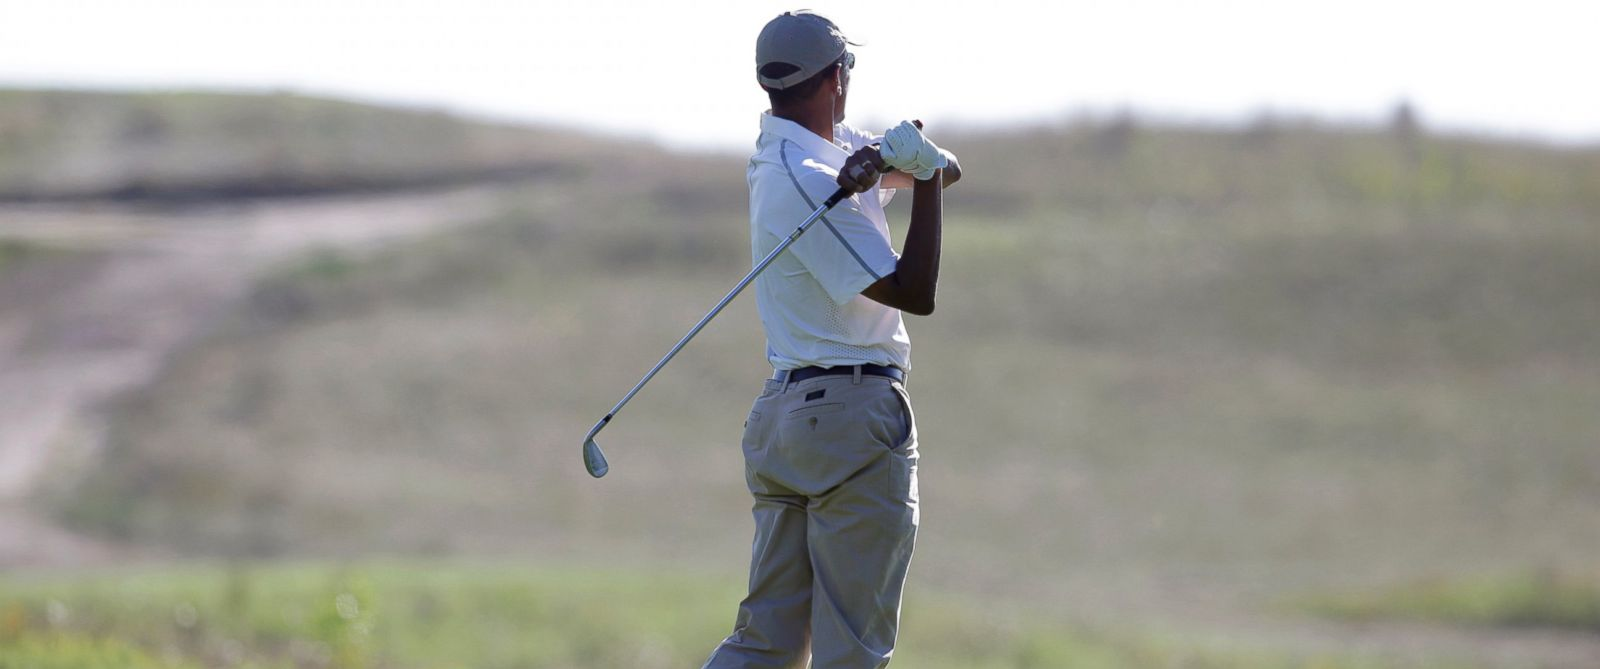 PHOTO: President Barack Obama follows through on a swing as he tees off while golfing at Vineyard Golf Club in Edgartown, Mass., on the island of Marthas Vineyard, Aug. 20, 2014.